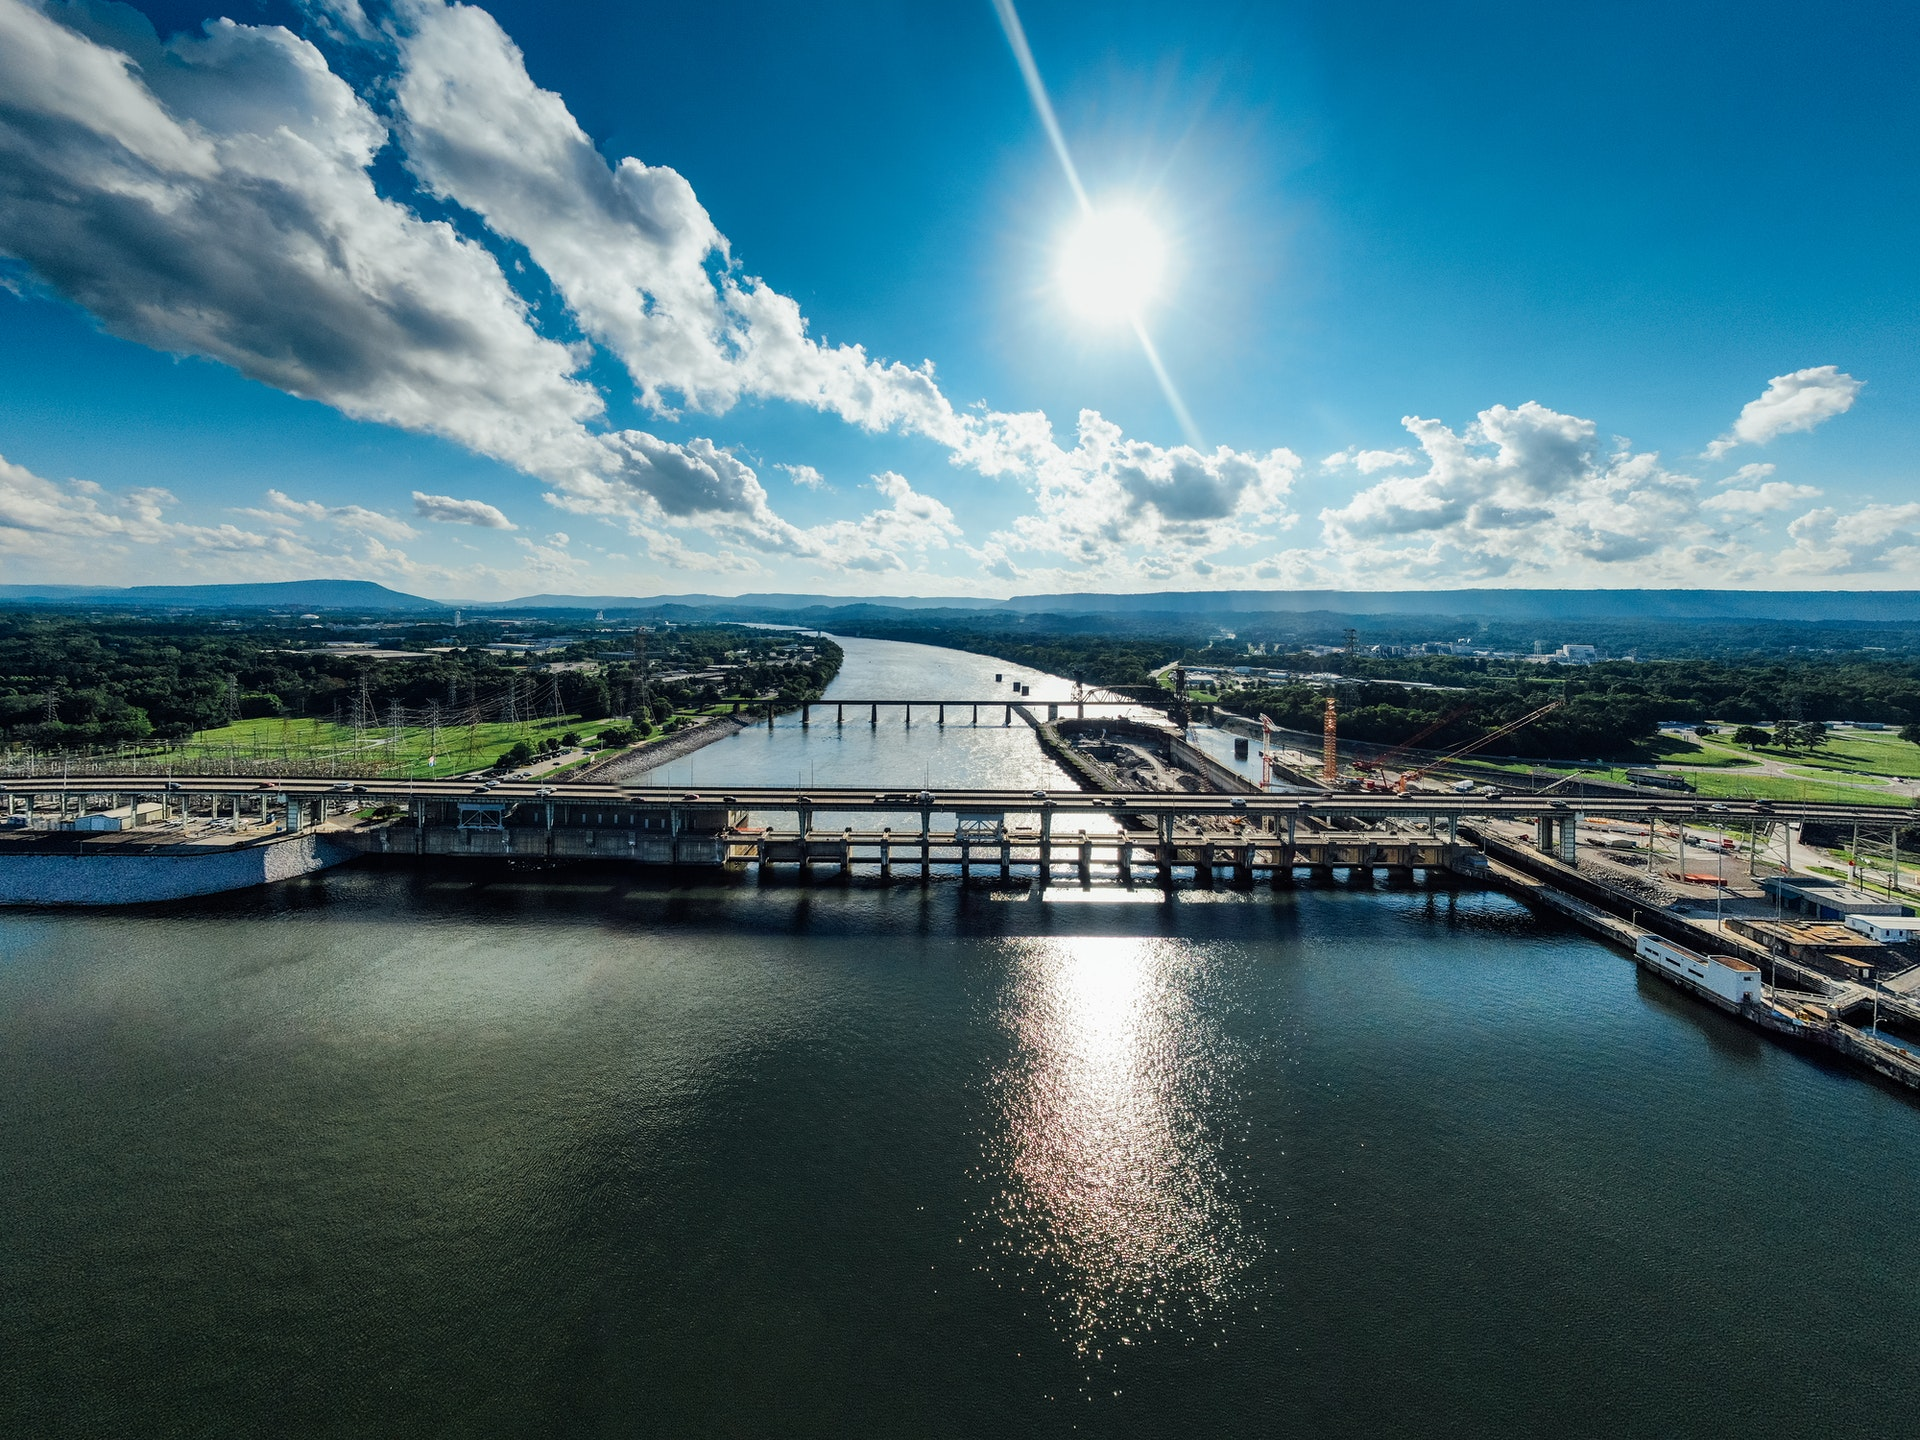 Skyline and landscape of Chattanooga